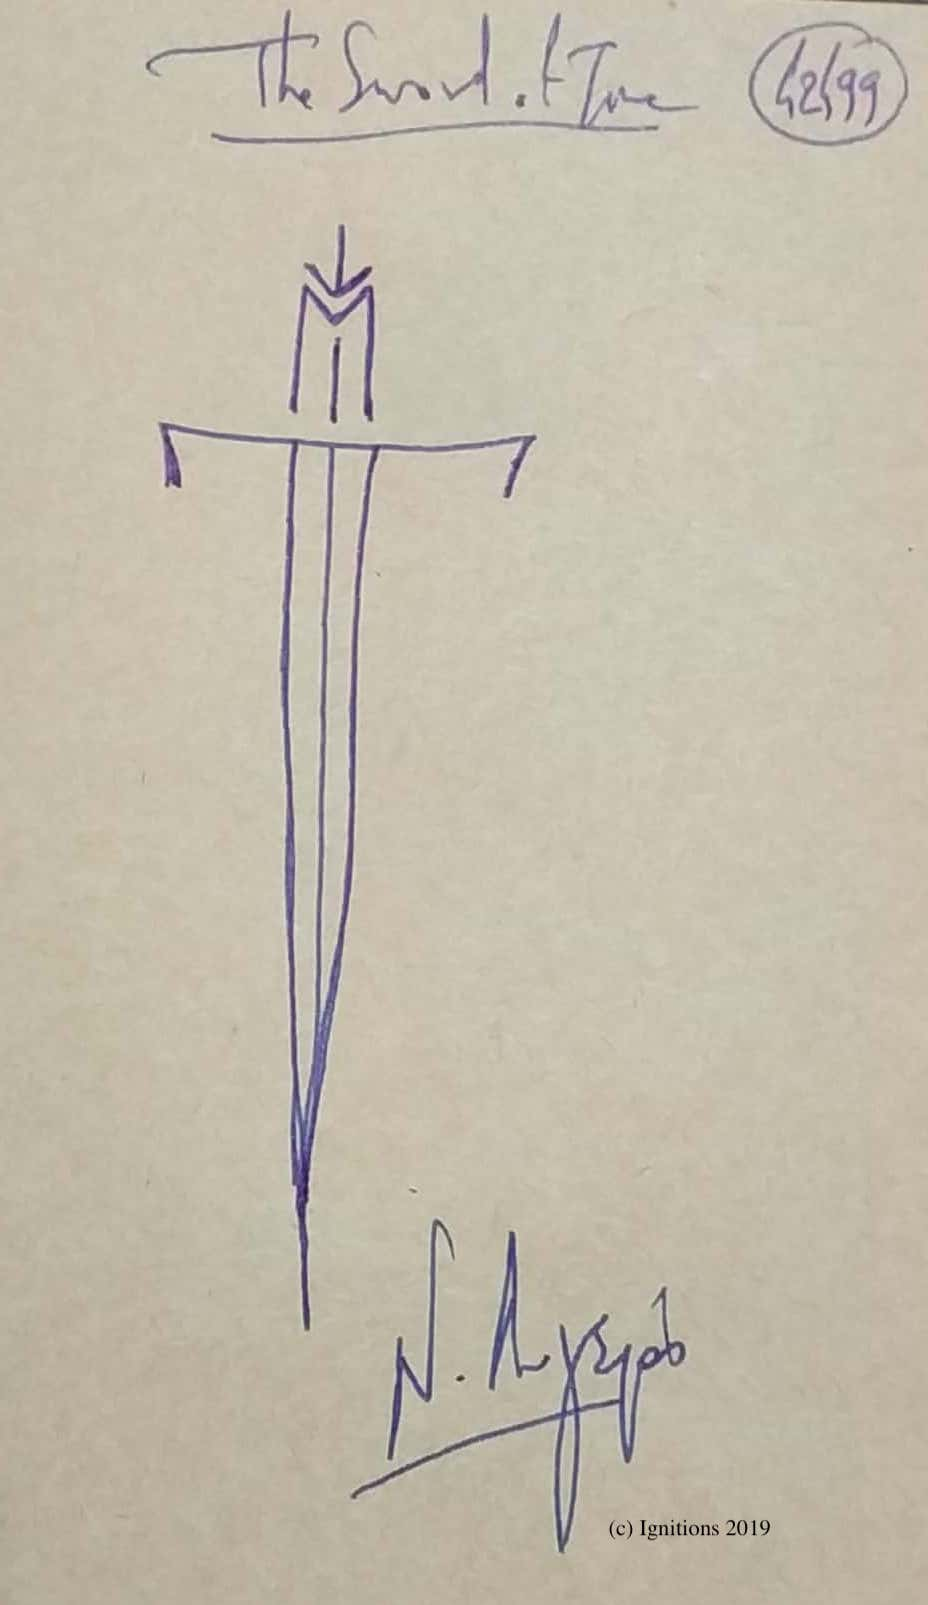 The Sword of Time. (Dessin)